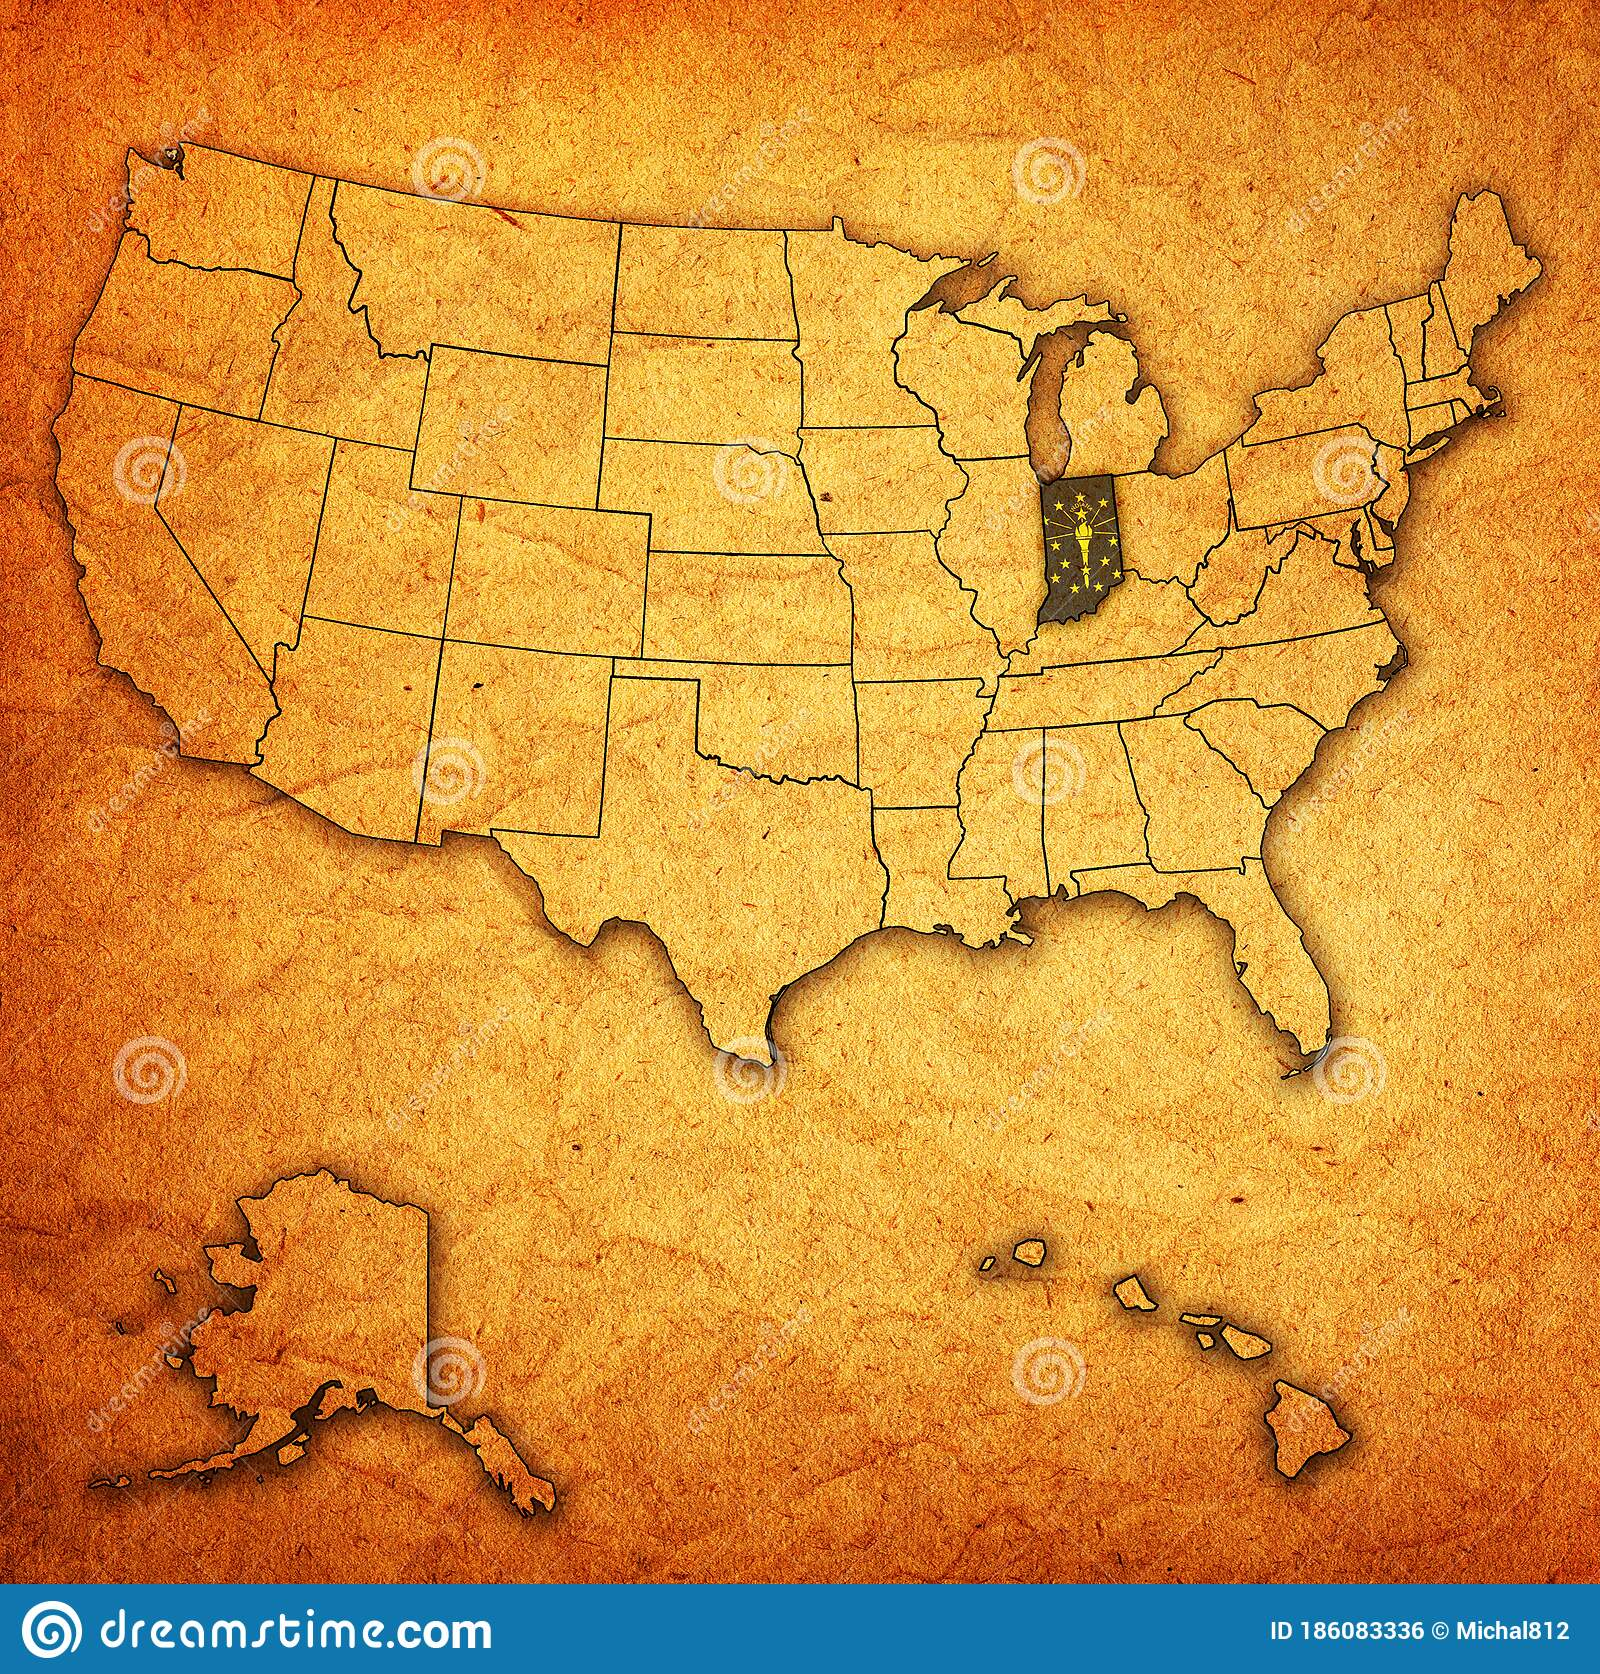 Large detailed map of indiana with cities and towns. 262 Indiana Map Photos Free Royalty Free Stock Photos From Dreamstime